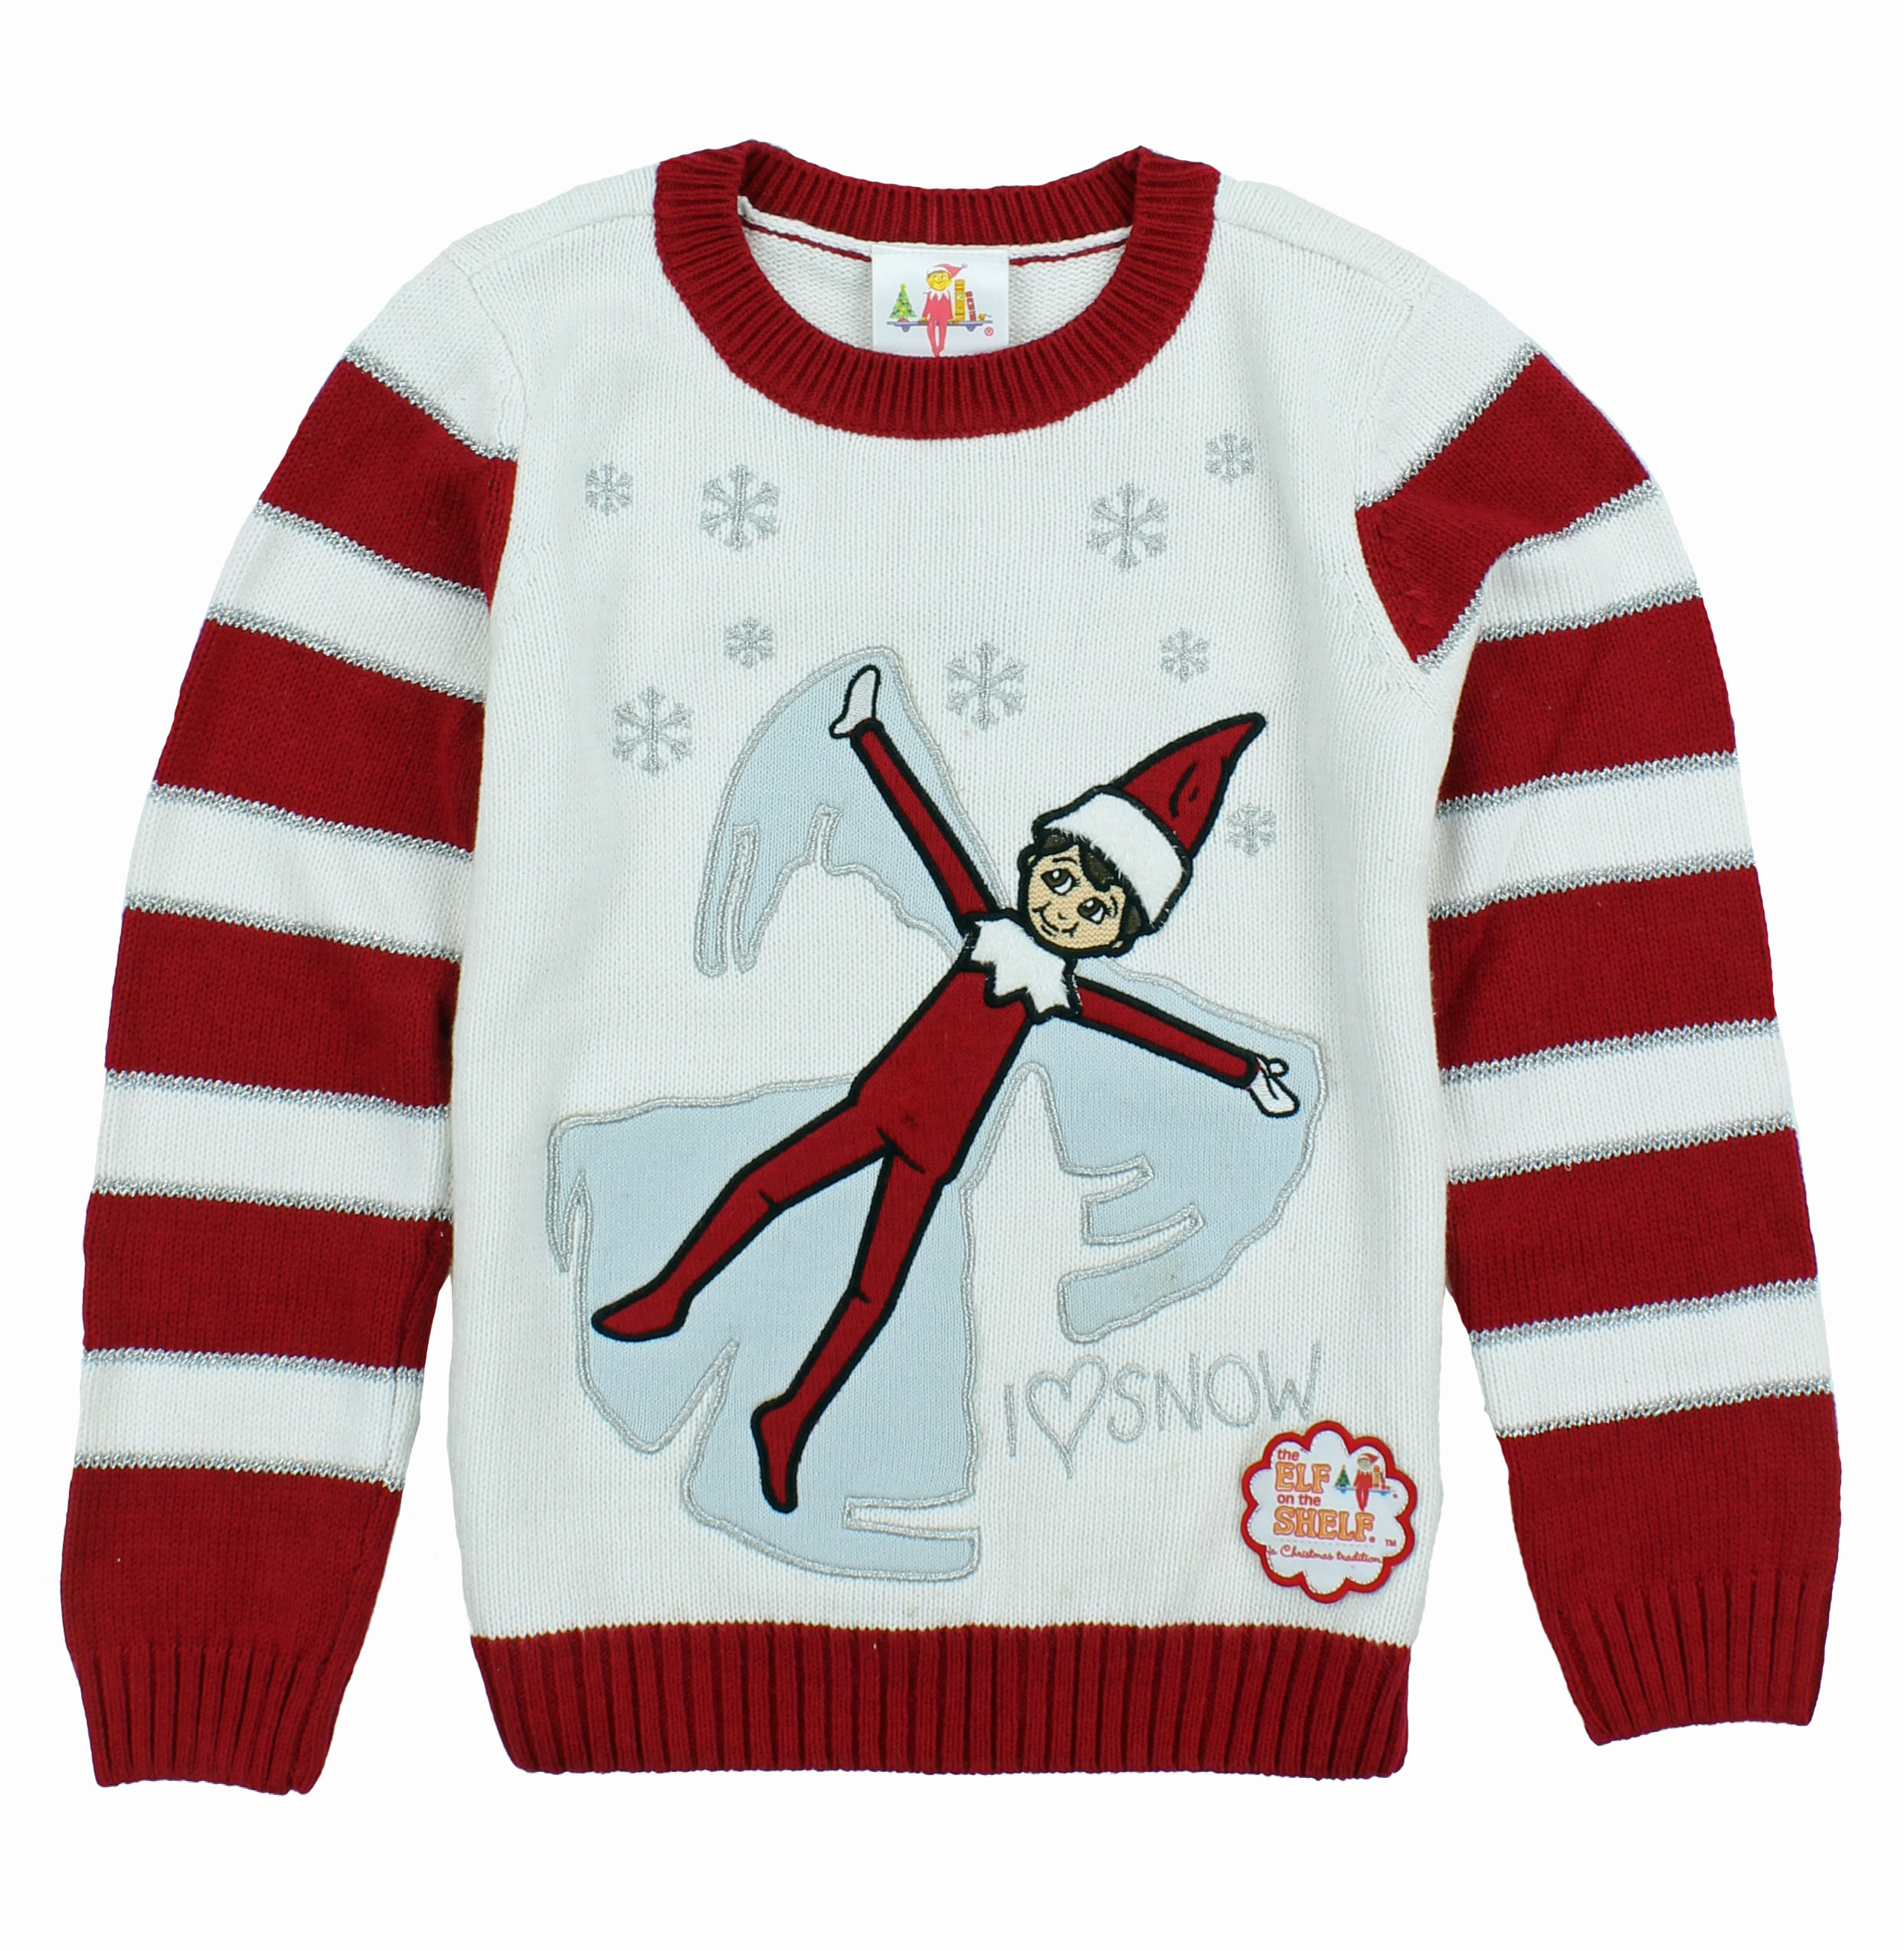 Christmas Sweater Kid\'s The Elf On The Shelf Pullover Sweatshirt | eBay